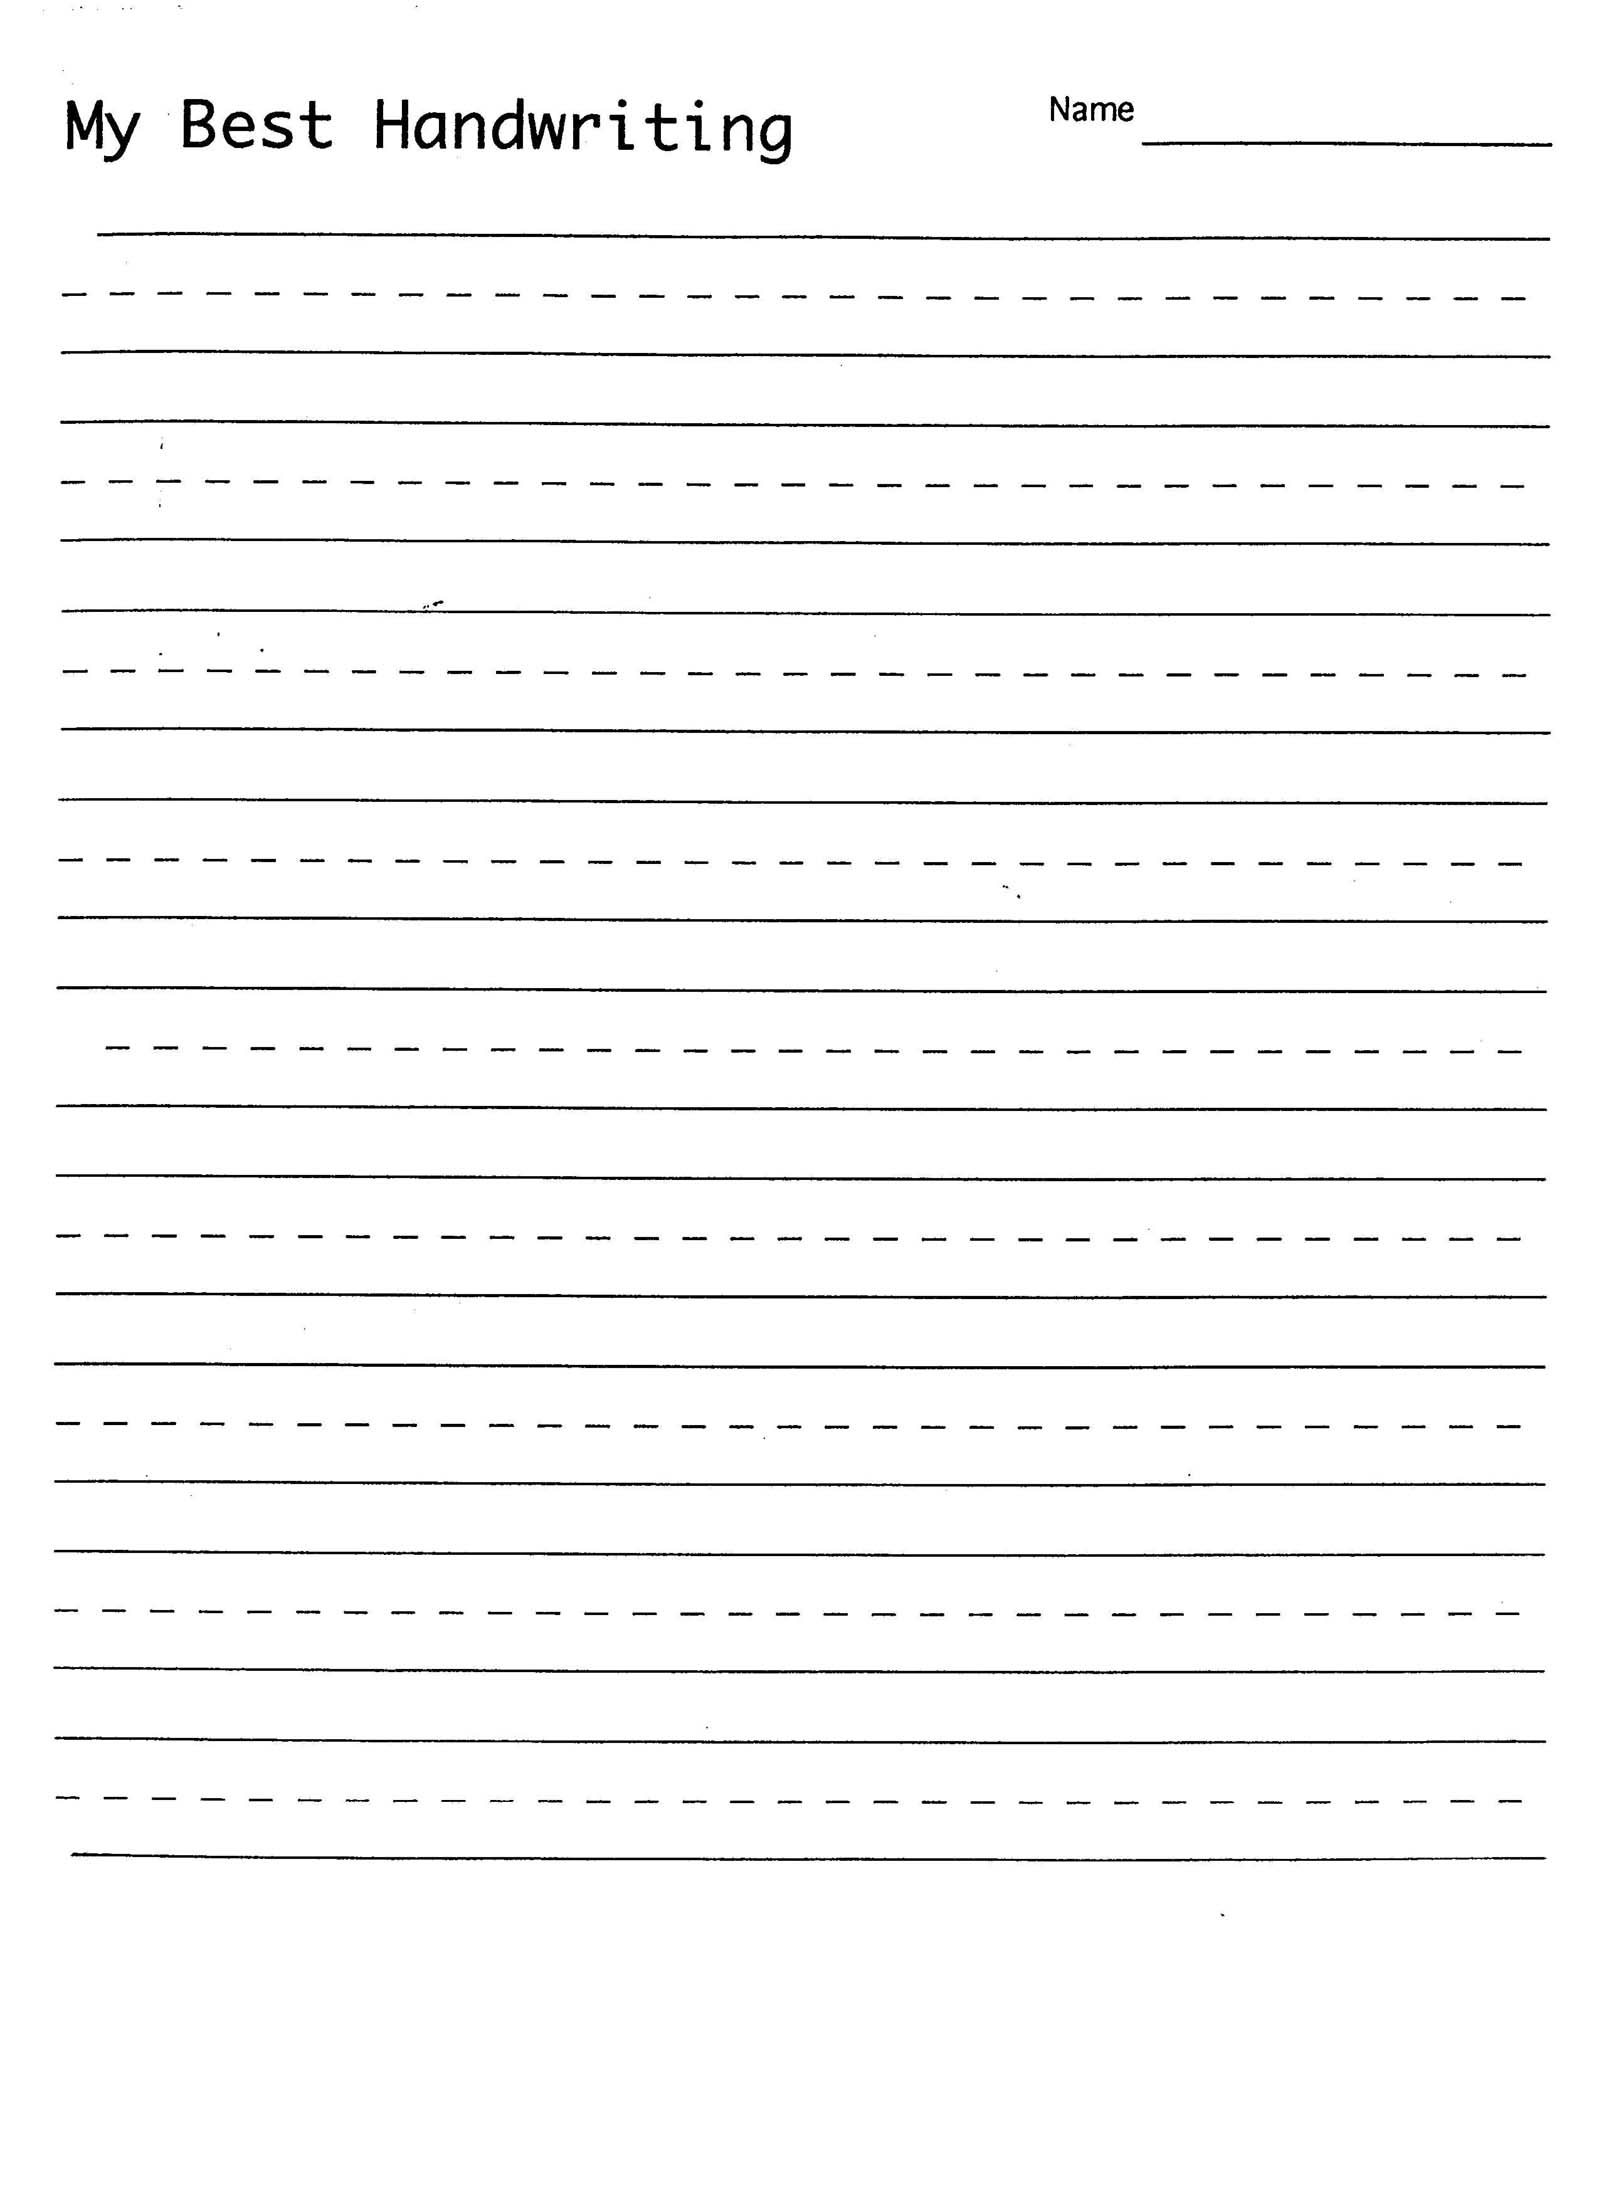 Printables Handwritting Worksheet blank handwriting worksheet versaldobip 6 best images of free printable practice sheet